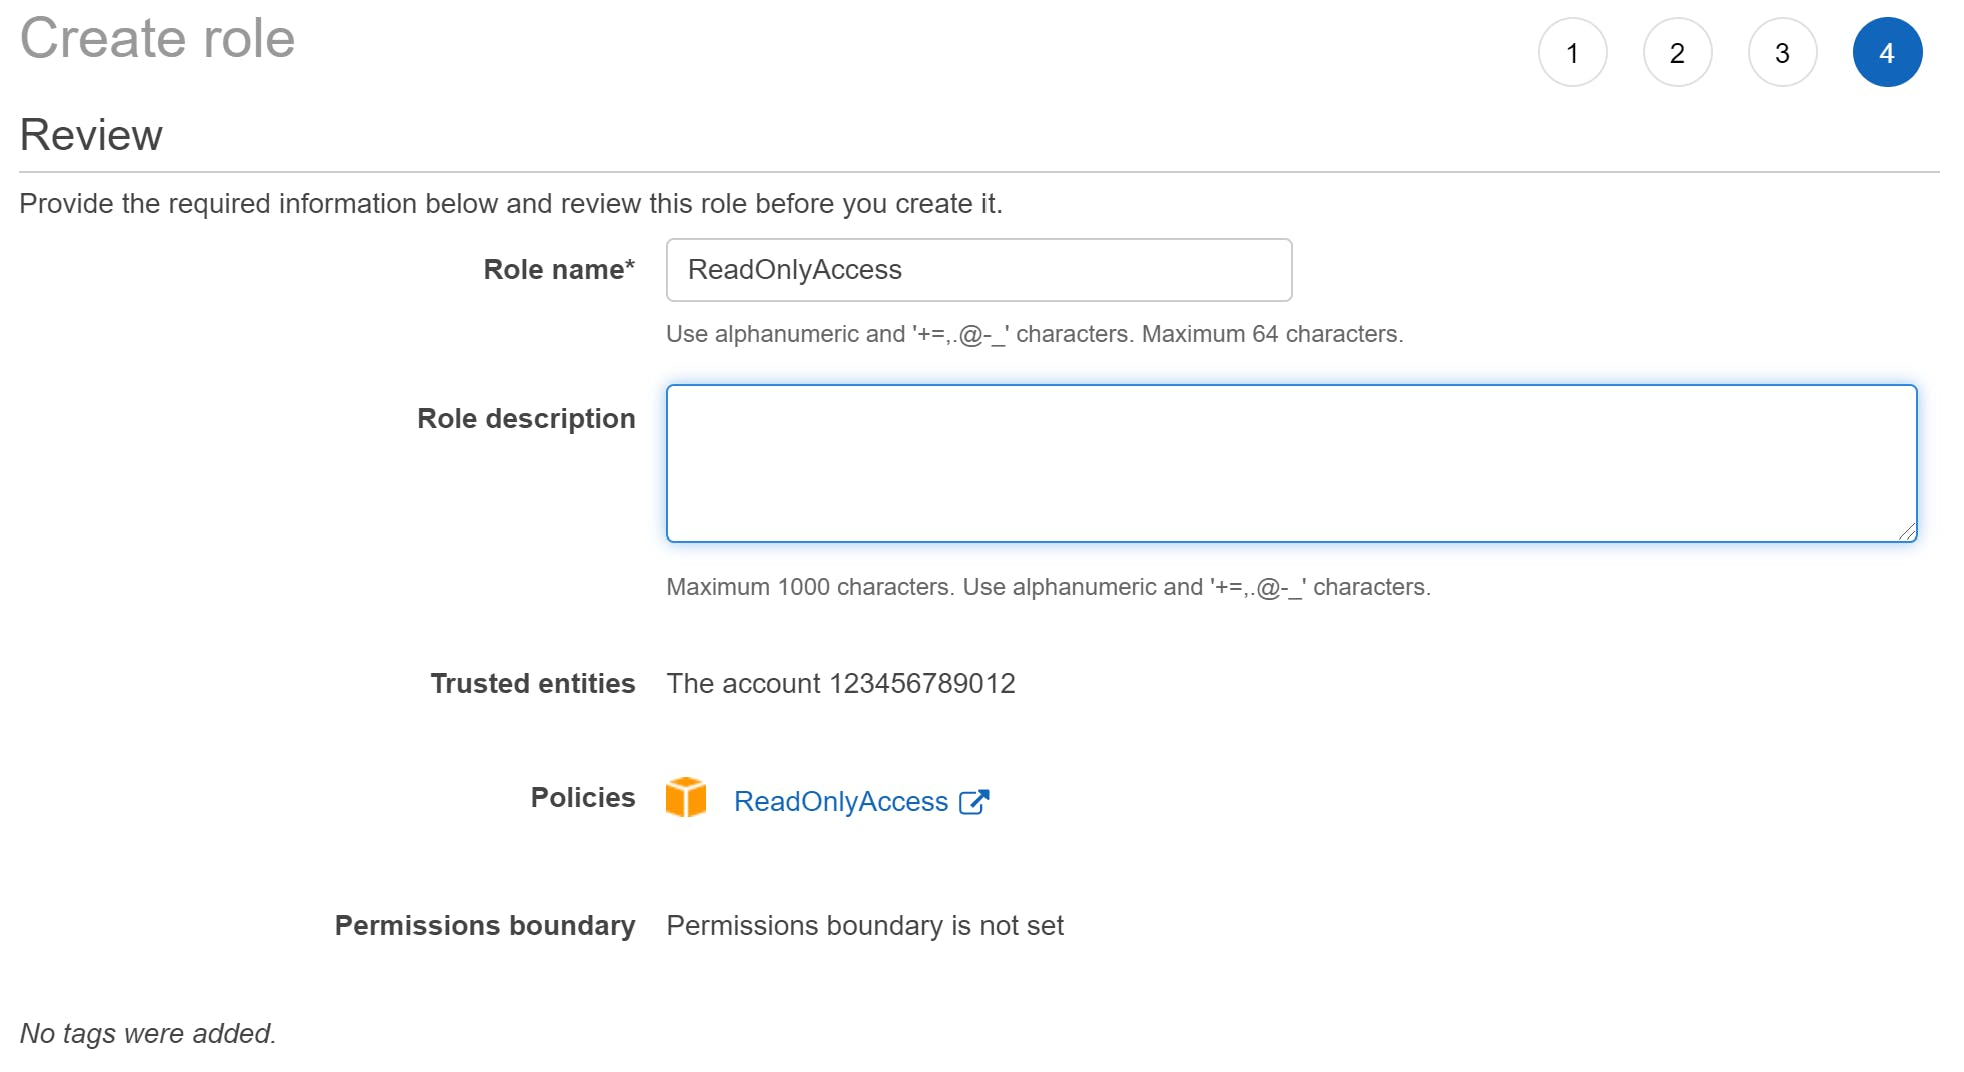 An image of the AWS console role creation step 4